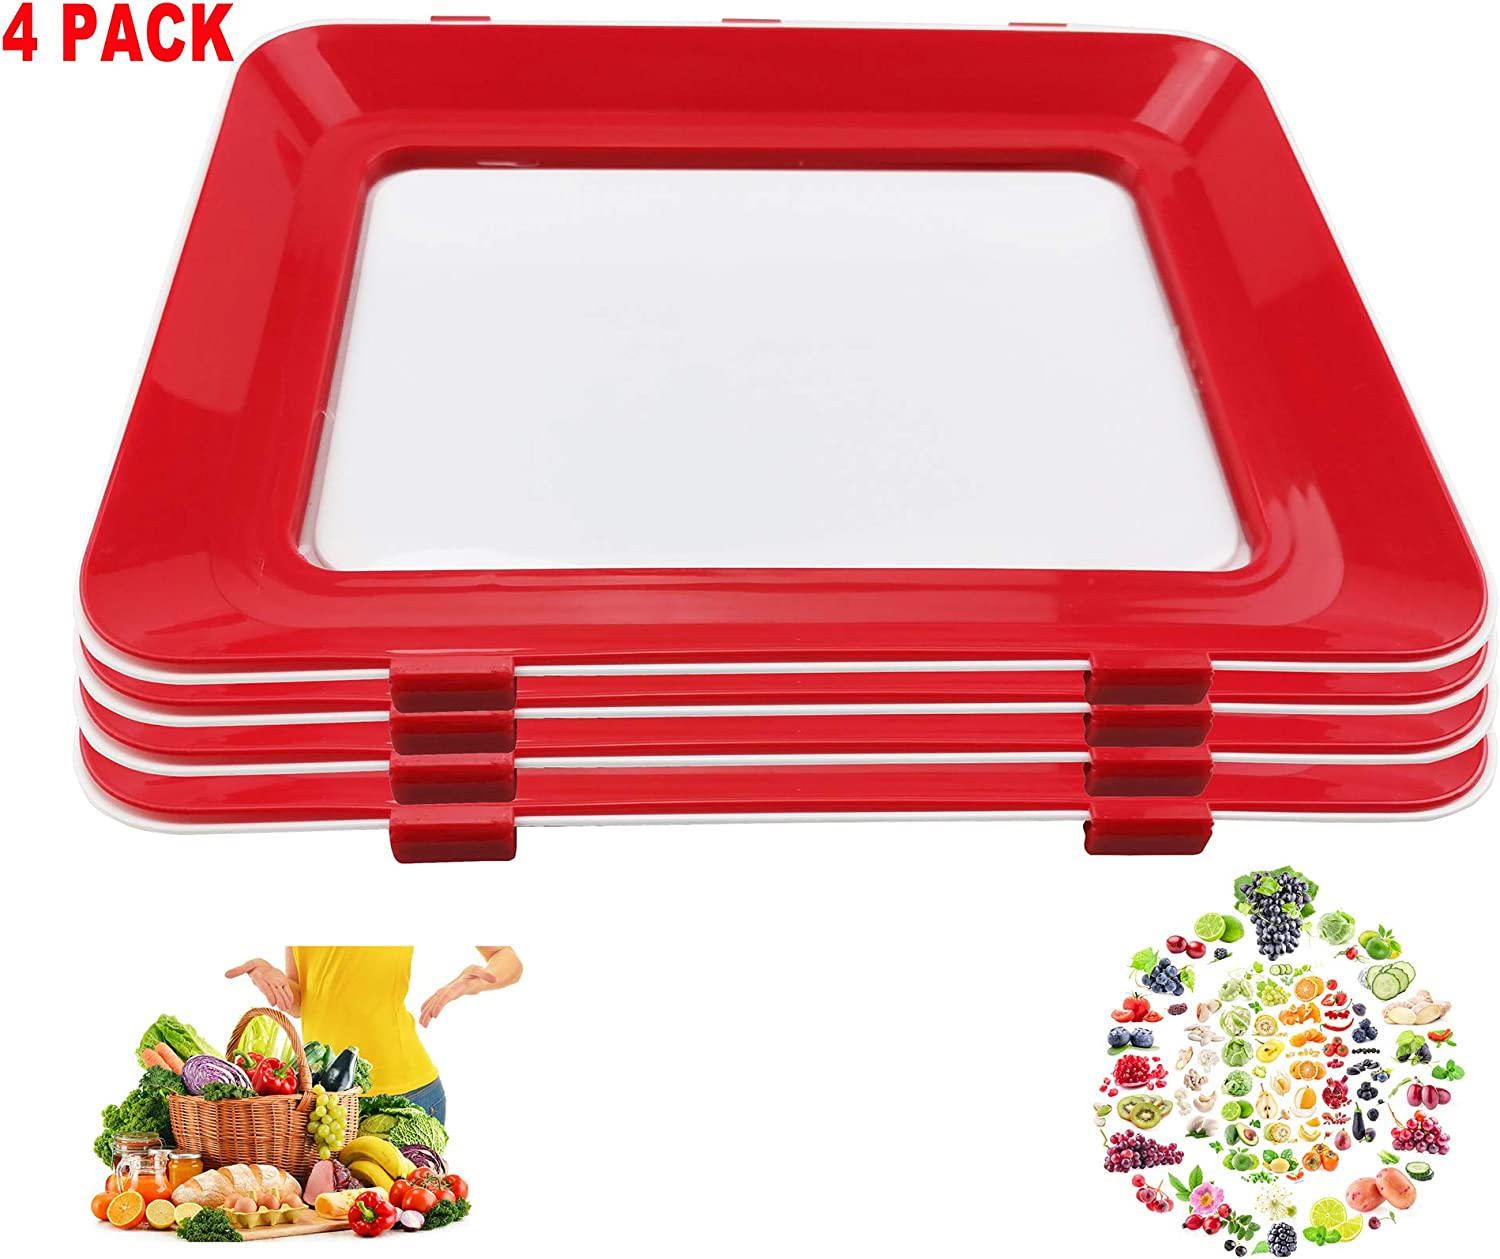 2020 Zero Waste Food Preservation Tray, Reusable Creative Leak proof Healthy Container Tray Set Kitchen Tools Portable Freezer Storage Clever Keep Fruit Vegetable Meat Hot Bacon and Bridge Sticker (4)